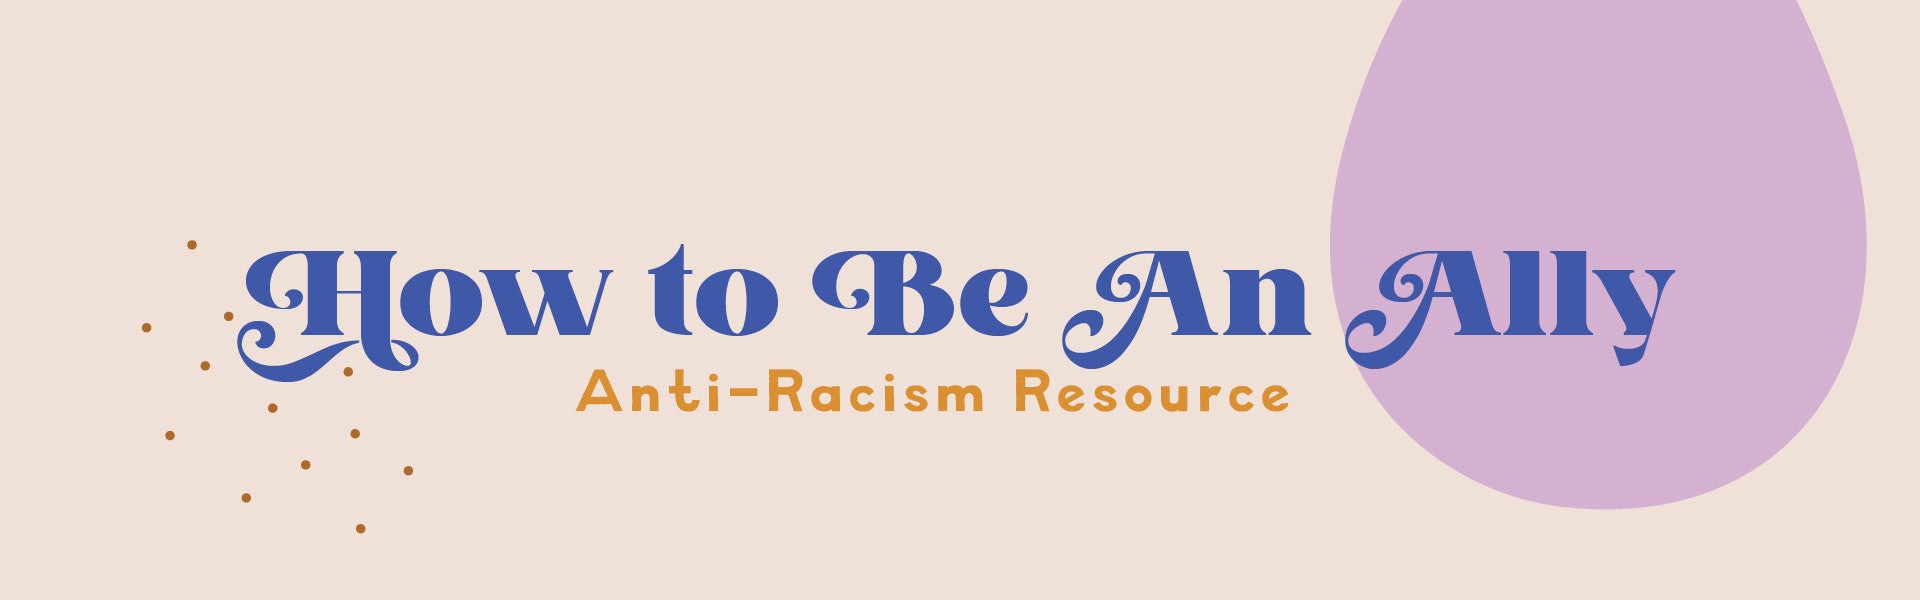 How to be an Ally to anti-racism